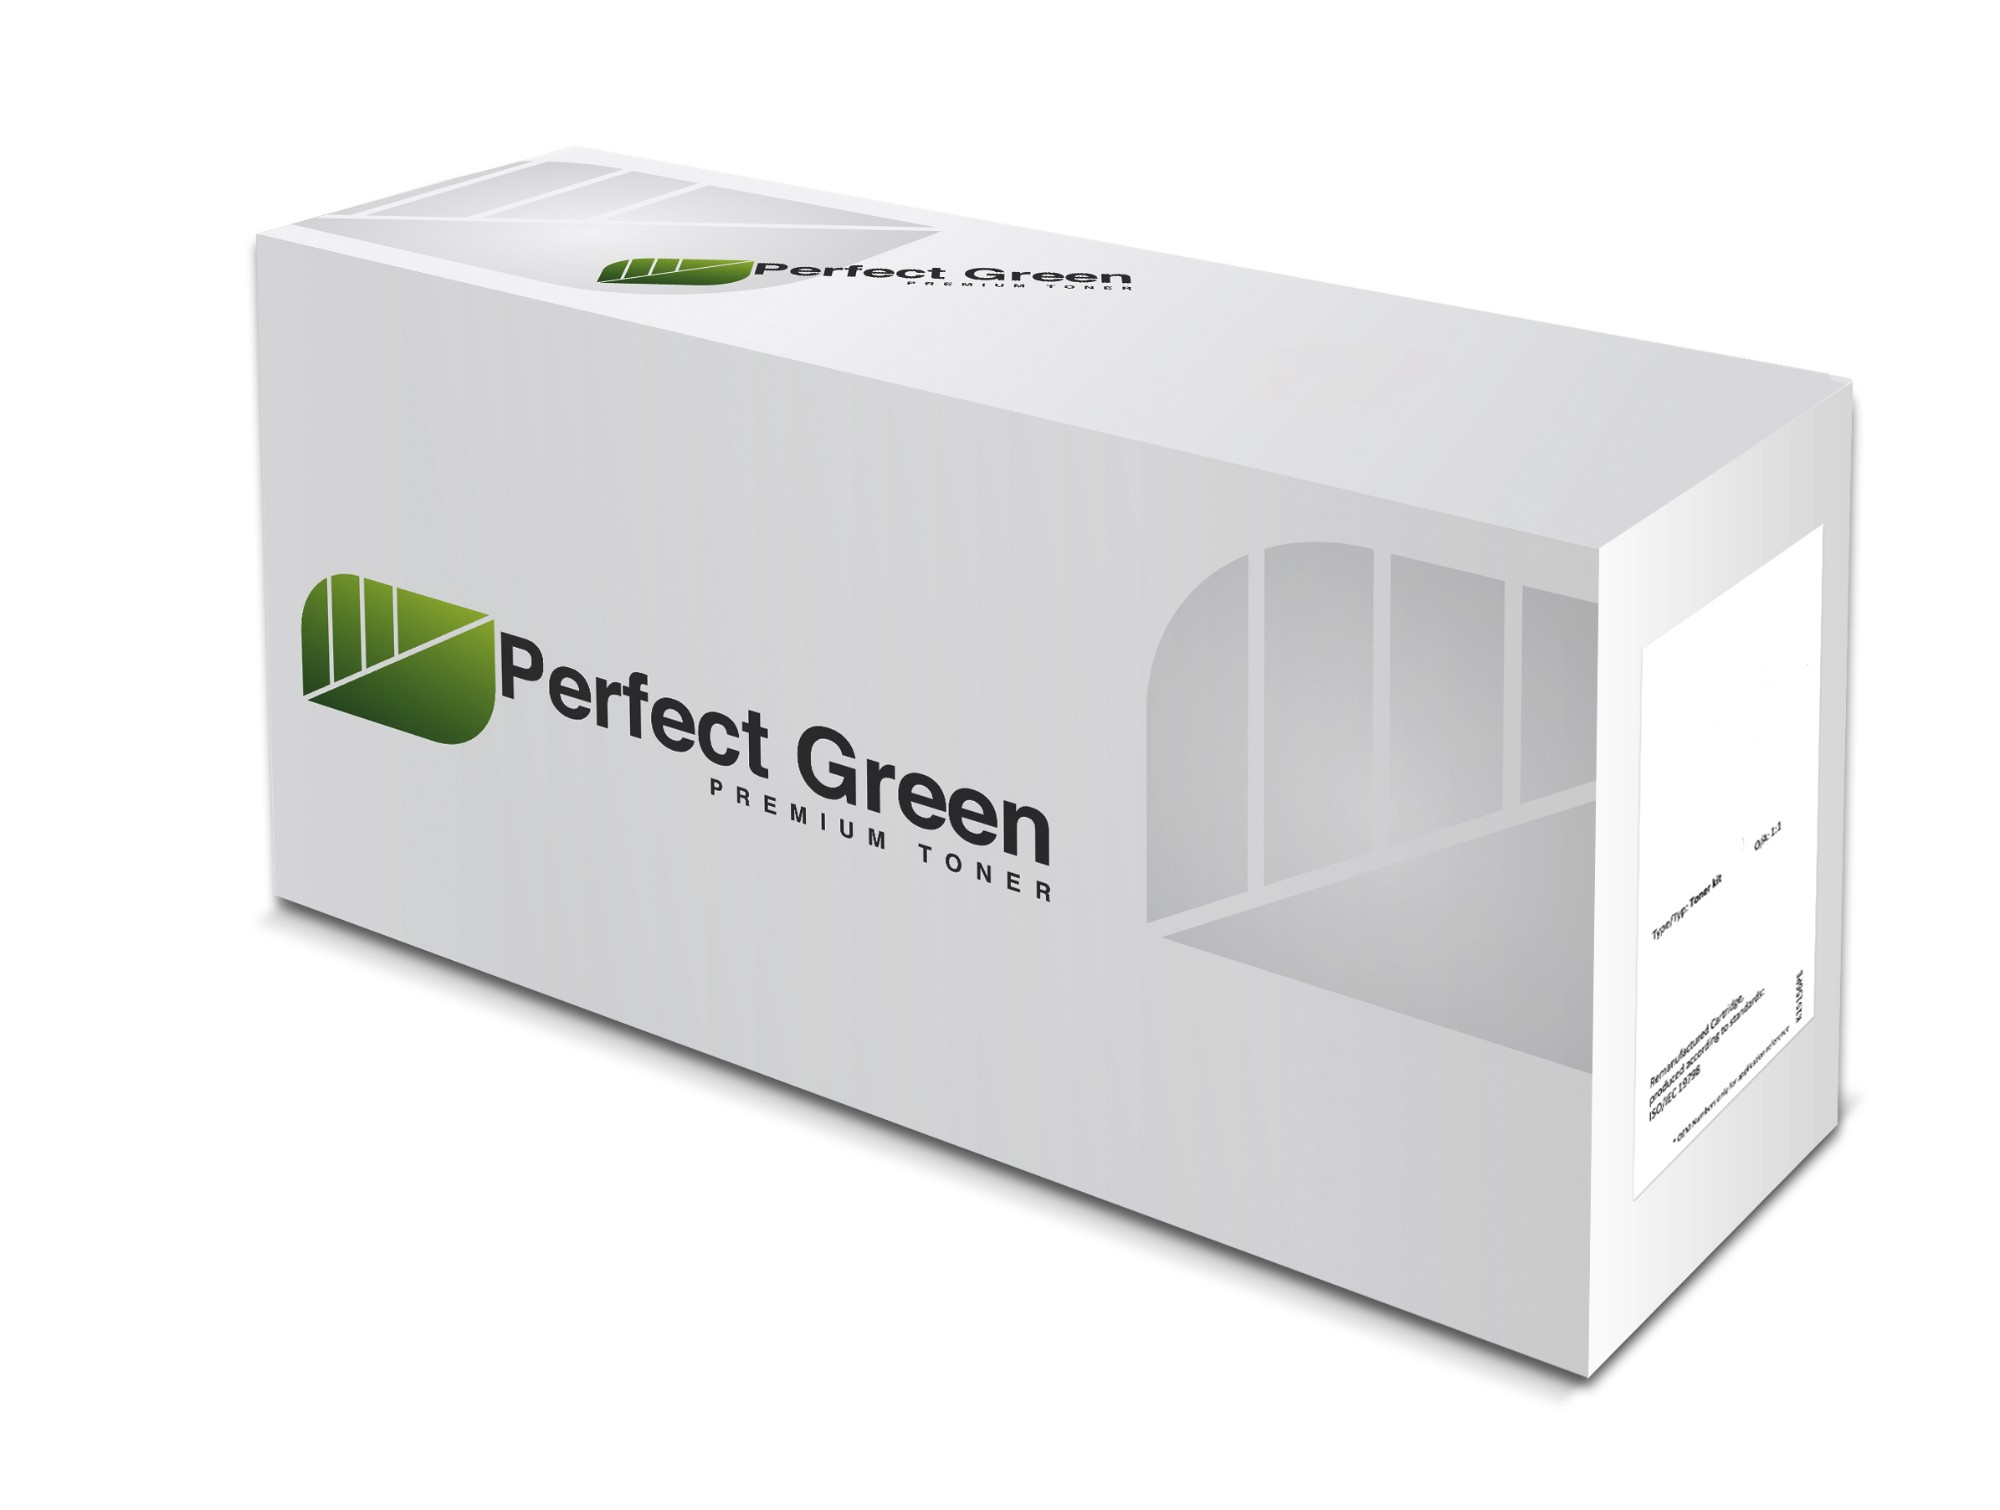 Perfect Green TK3110COMP 15500pages Black laser toner & cartridge